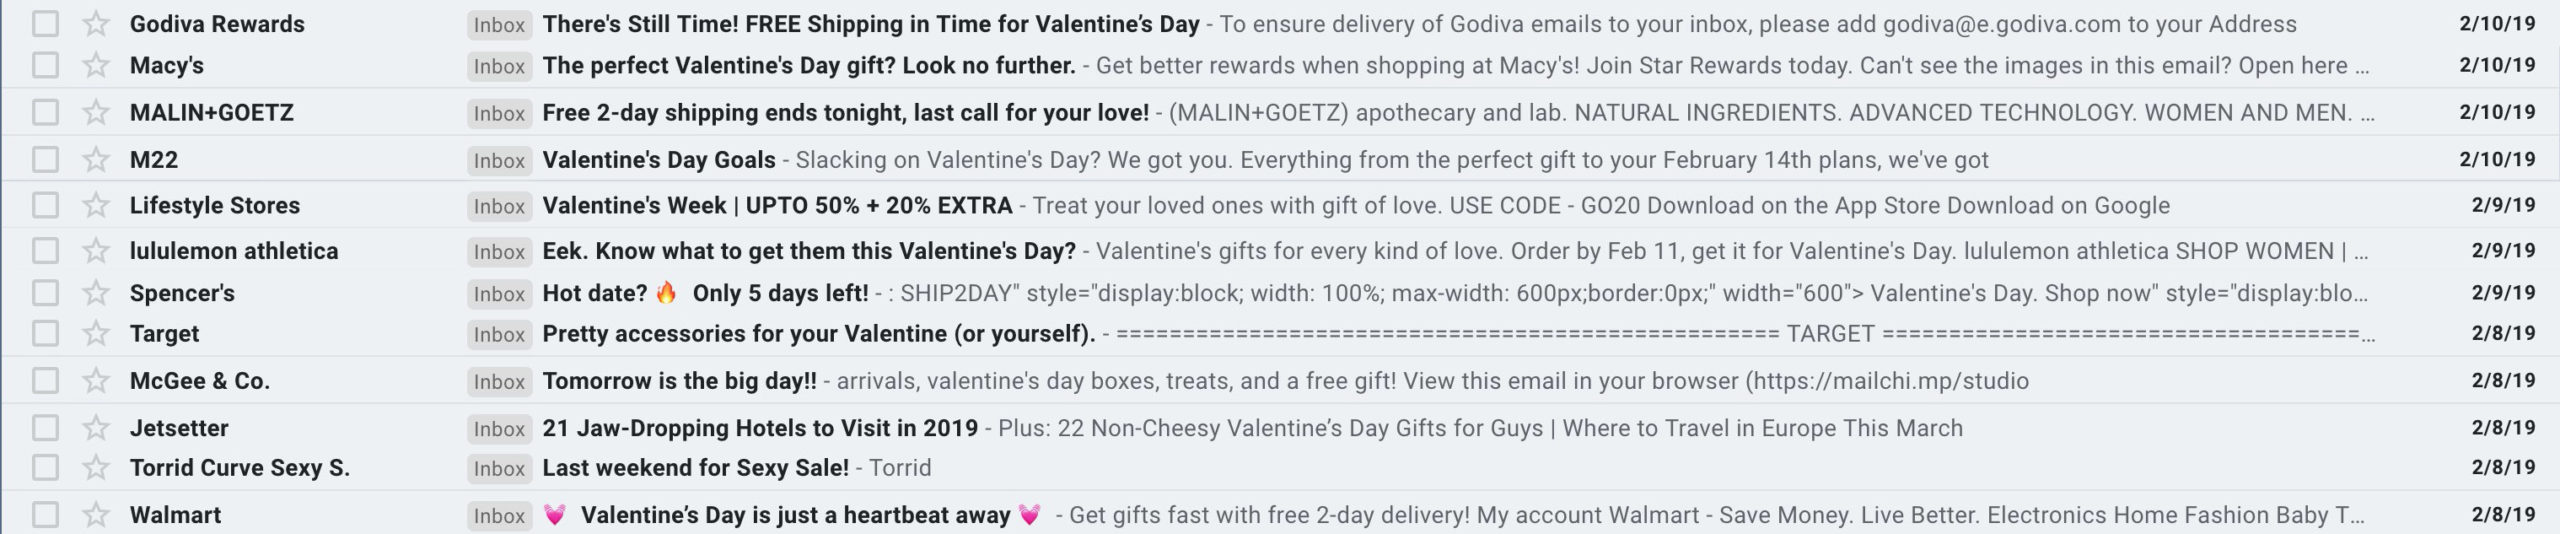 Valentine's Day emails with a sense of urgency.